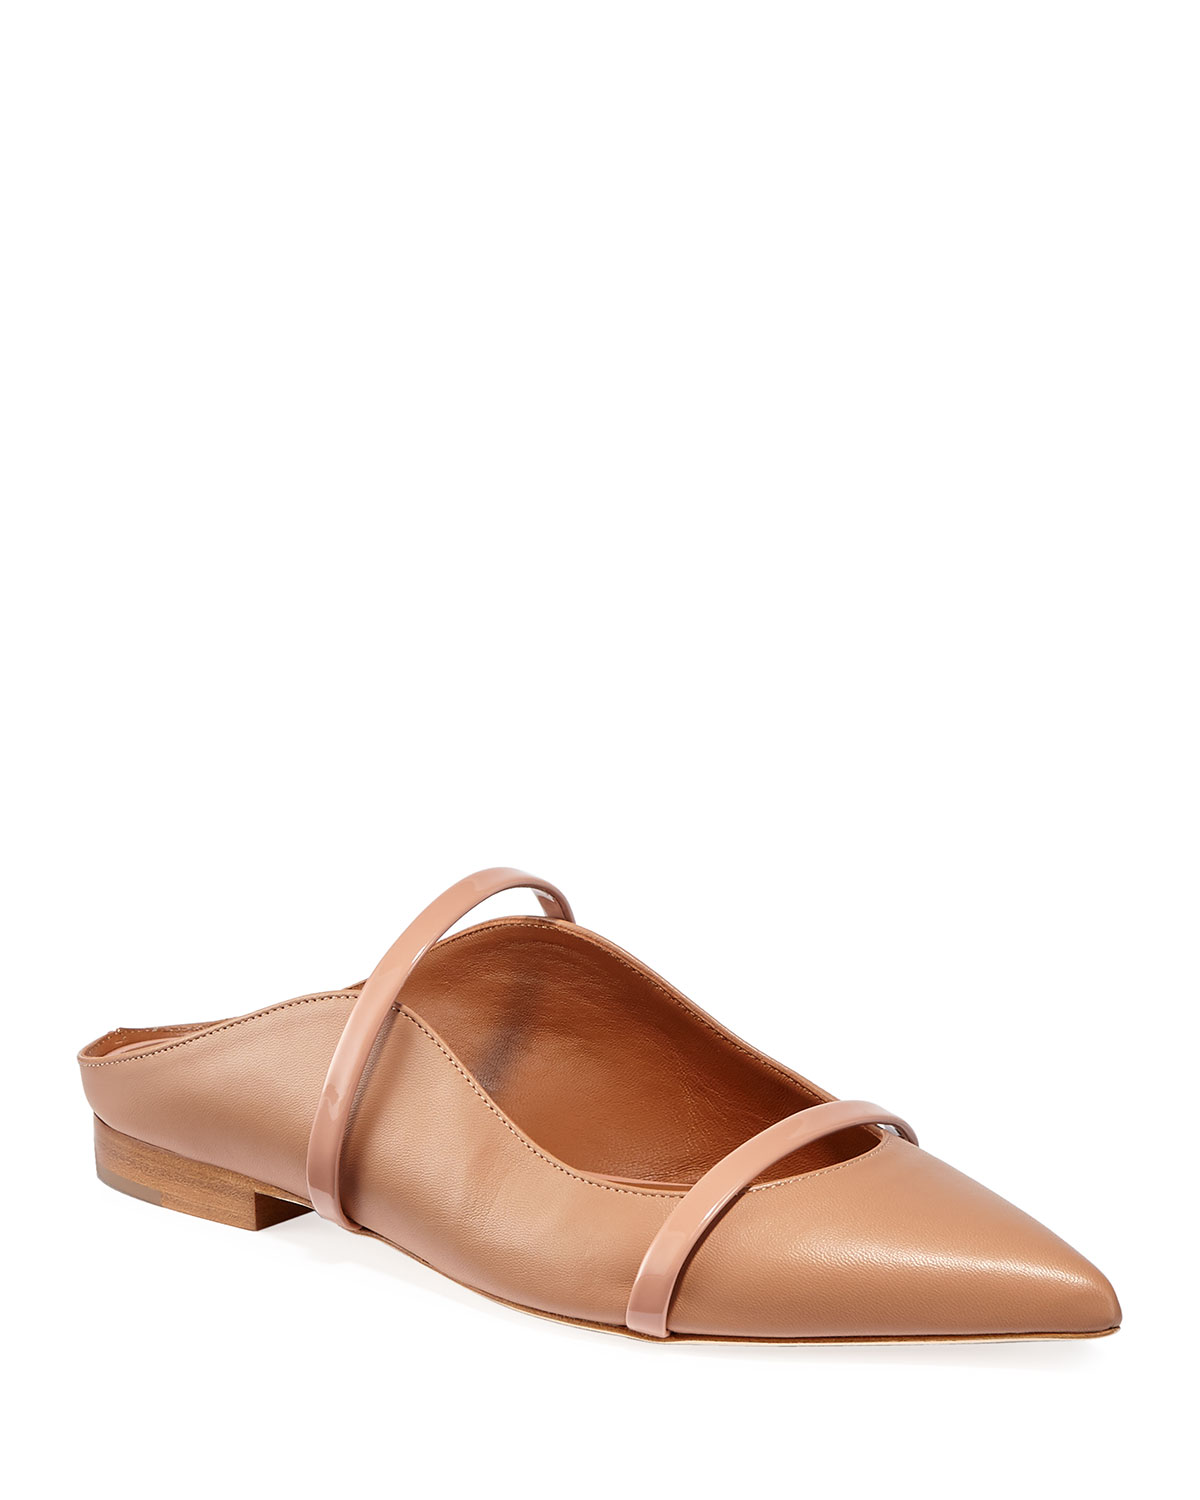 Maureen Flat Napa Leather Mules